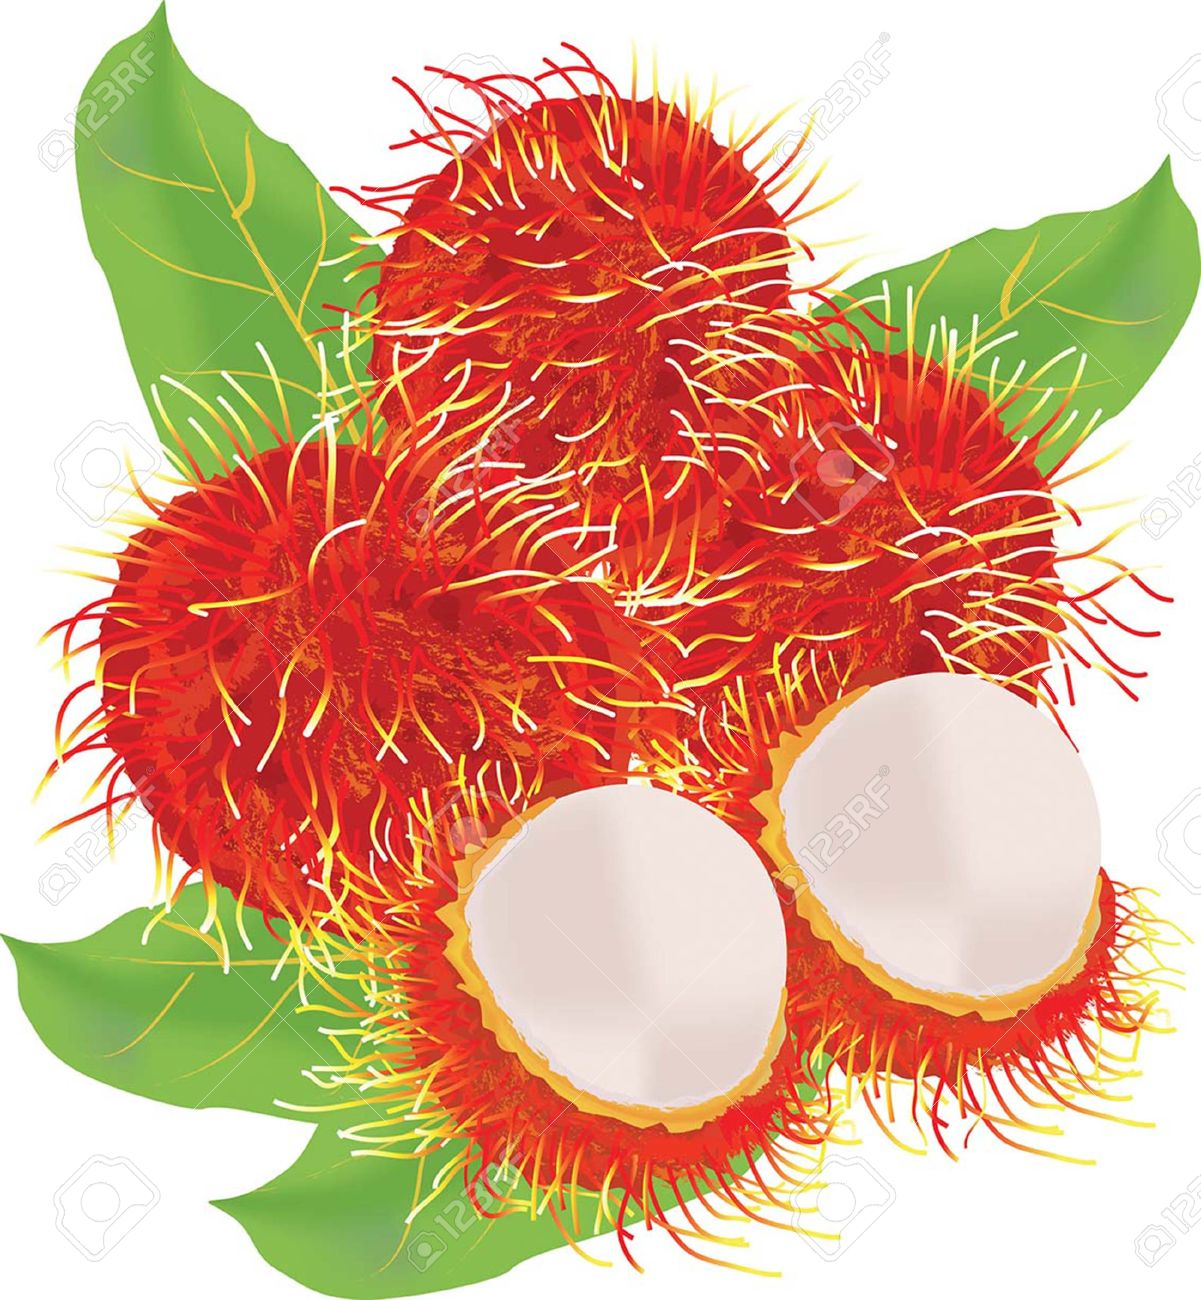 Rambutan Fruit Vector Royalty Free Cliparts, Vectors, And Stock.